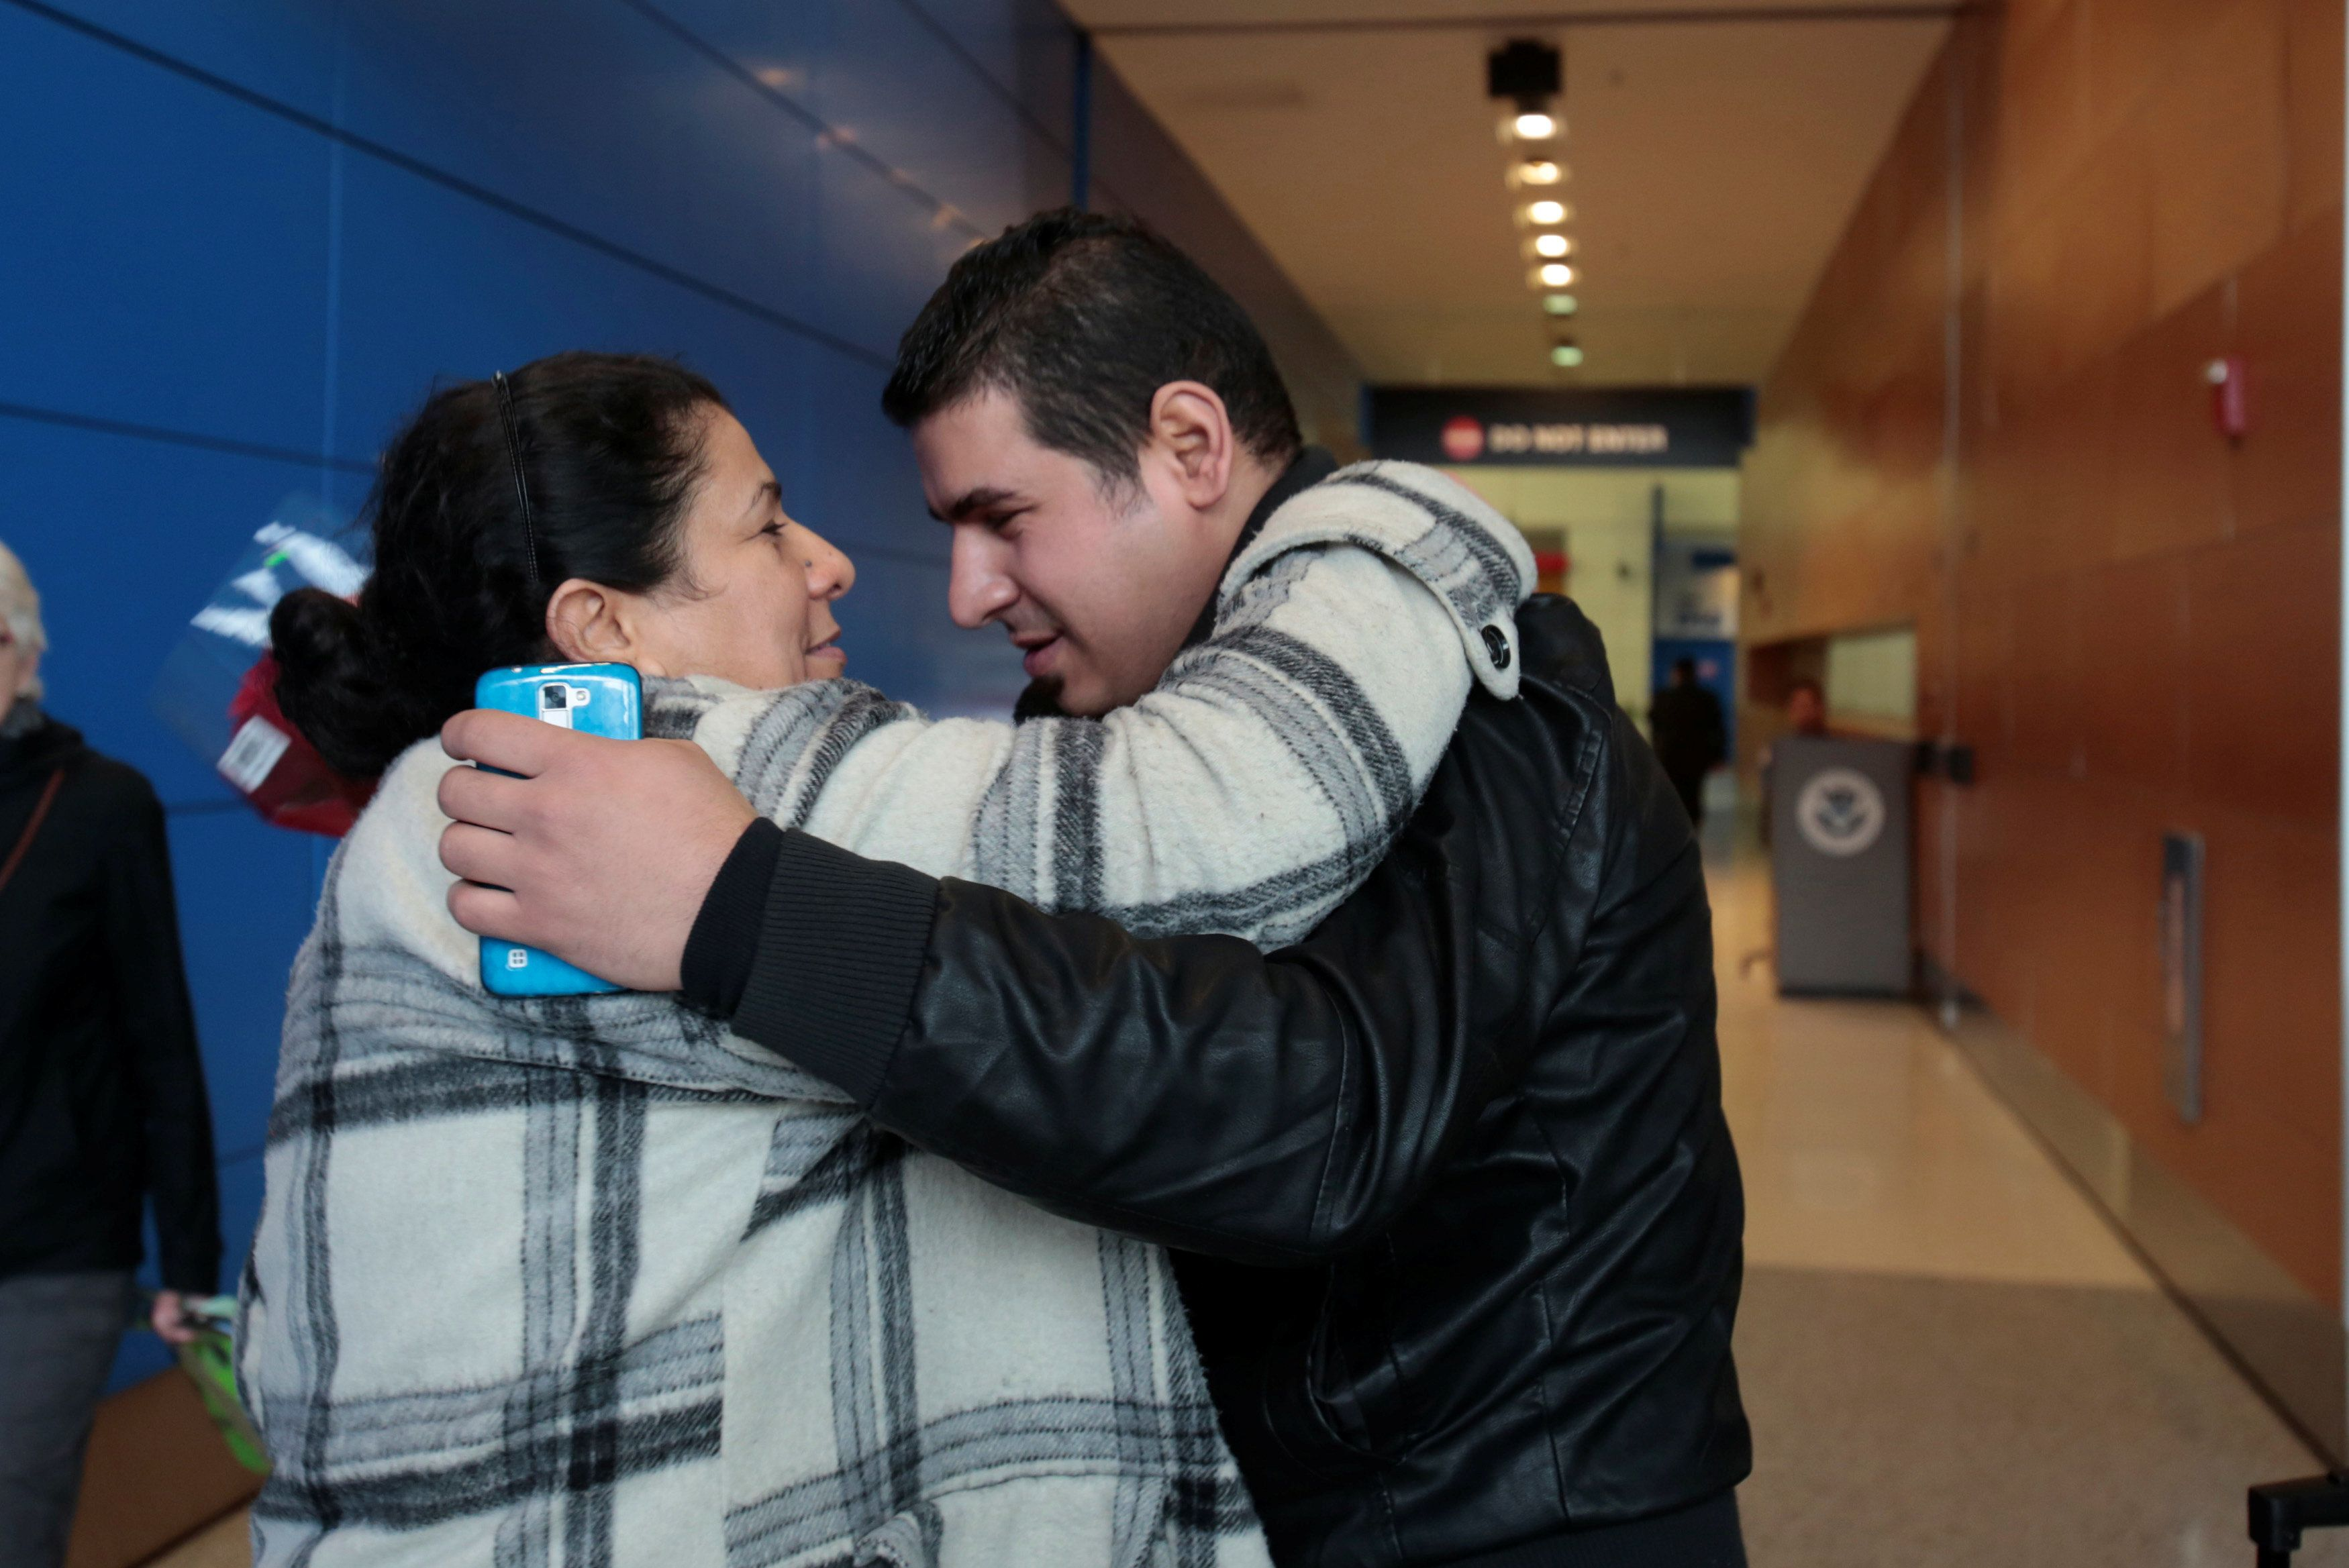 Iraqi refugee Amira Al-Qassab is reunited with her son Rami after arriving with her other children at Detroit Metro Airport i